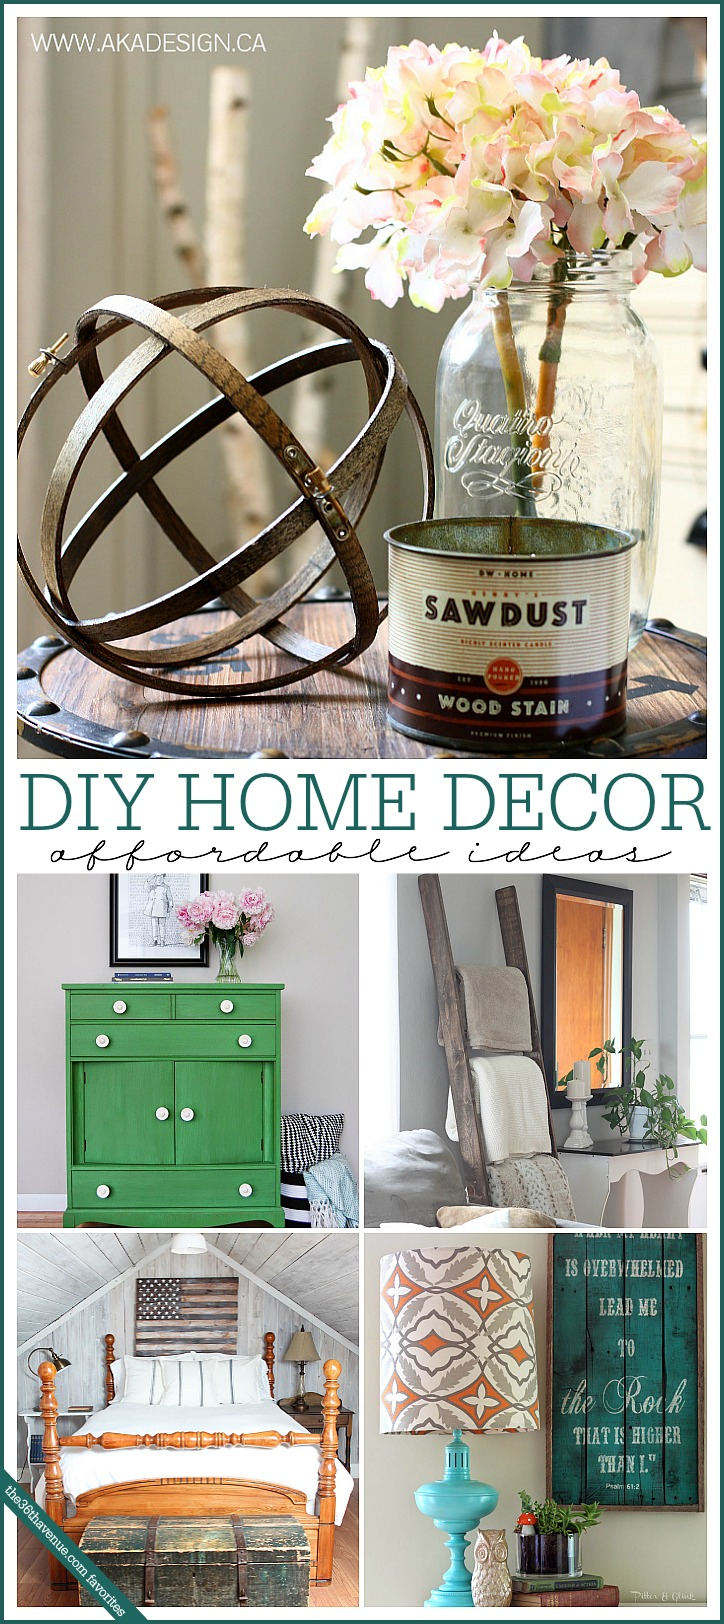 Home decor diy ideas the 36th avenue for Home design diy ideas